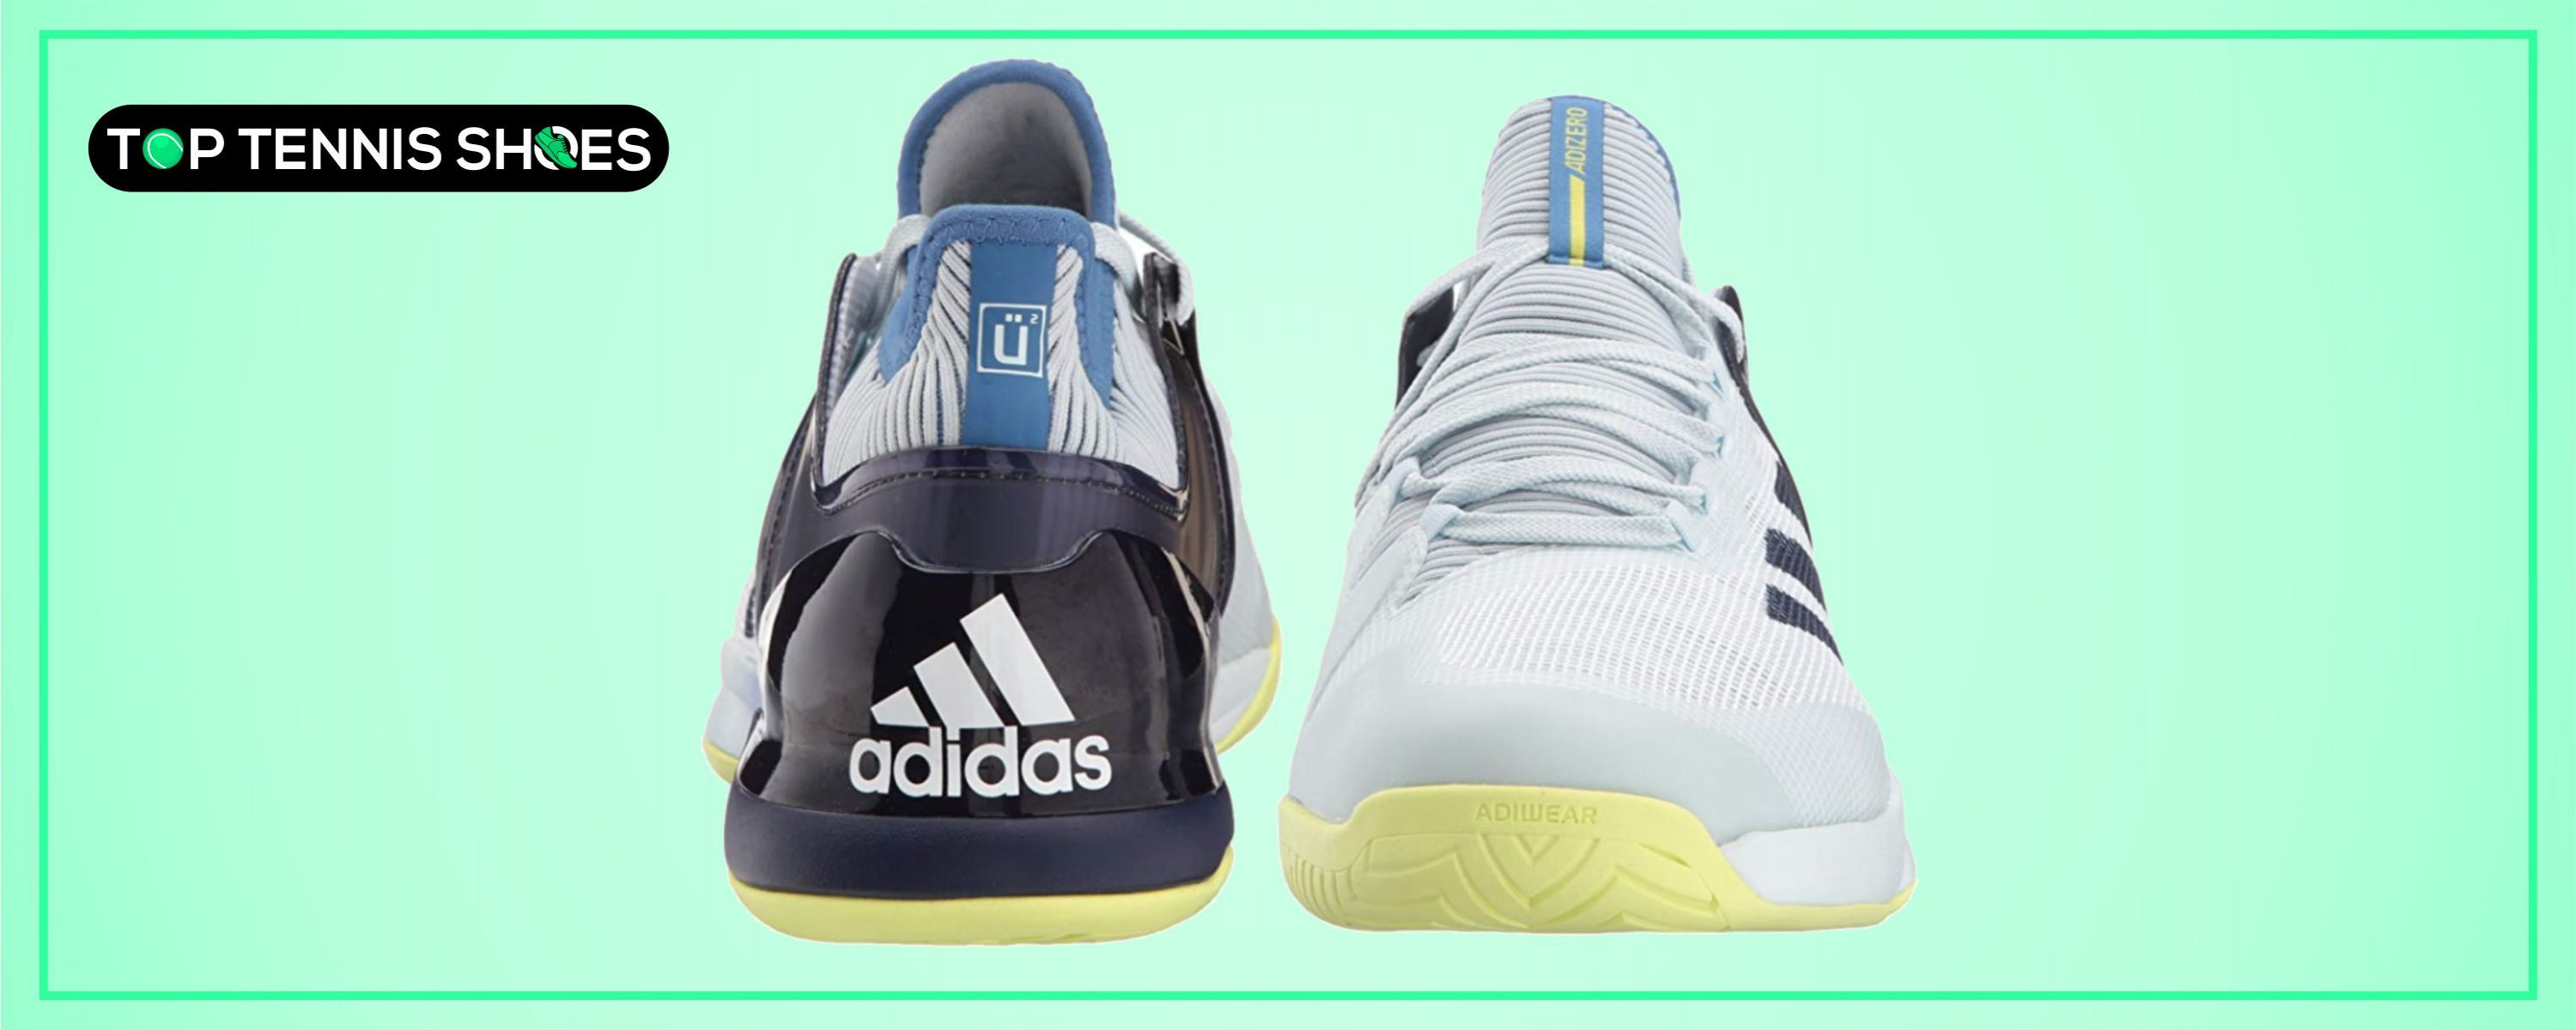 heavy players tennis shoes